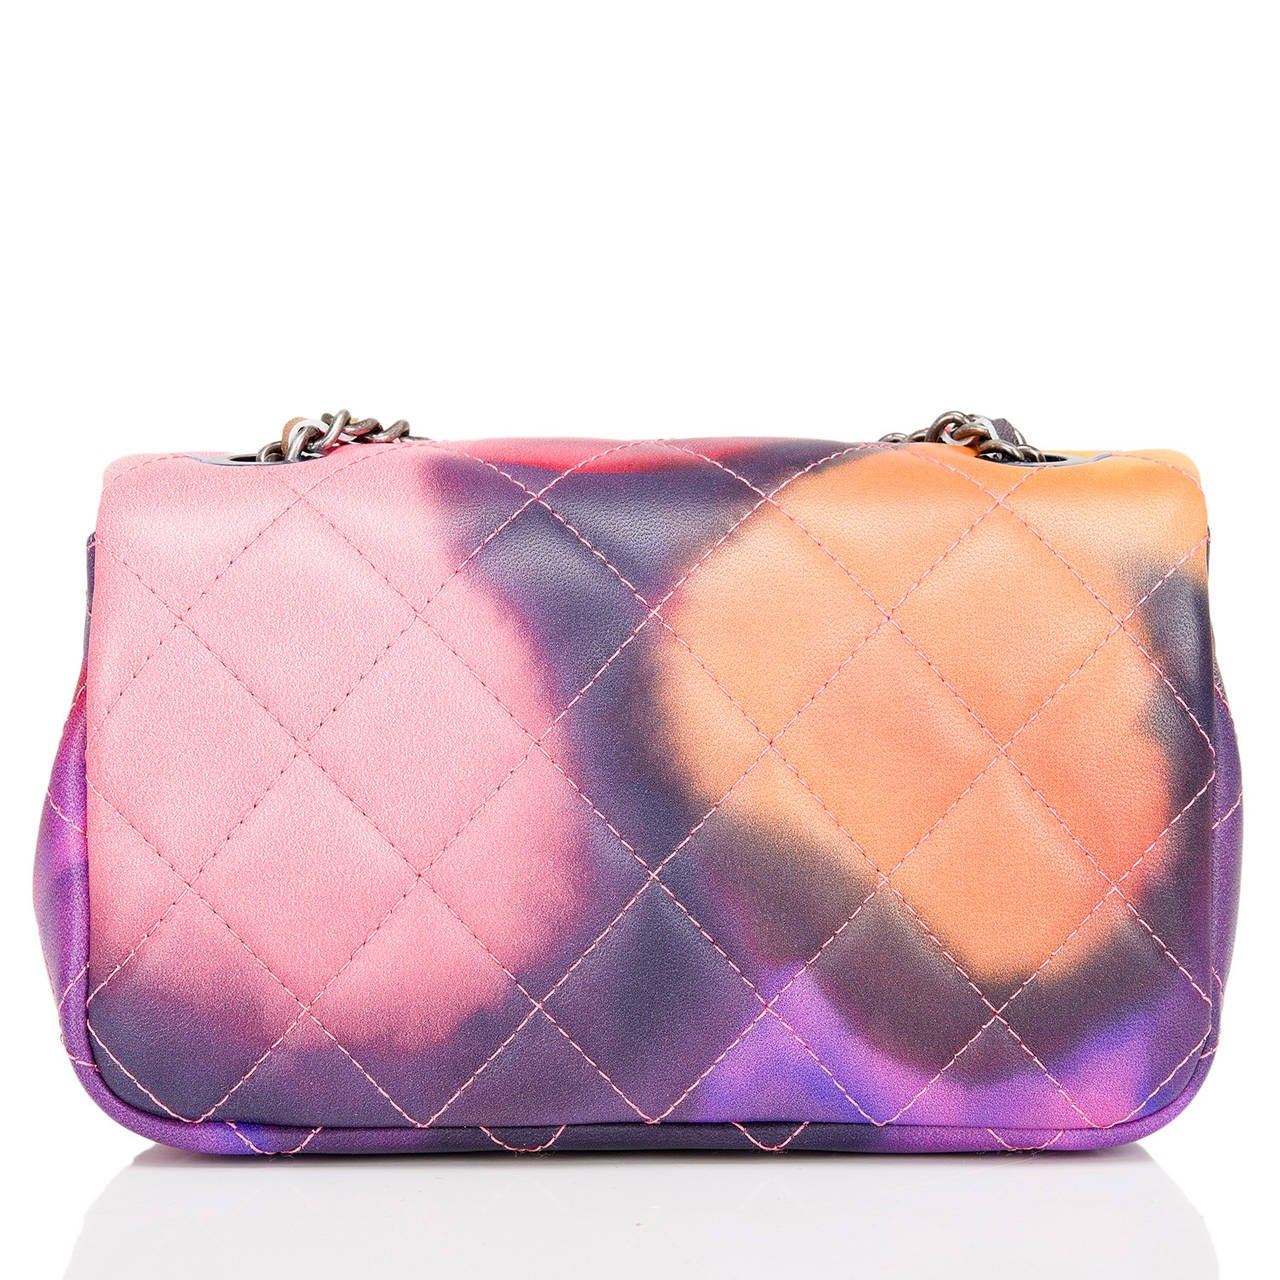 Pink Chanel Flower Power Mini Flap Bag For Sale